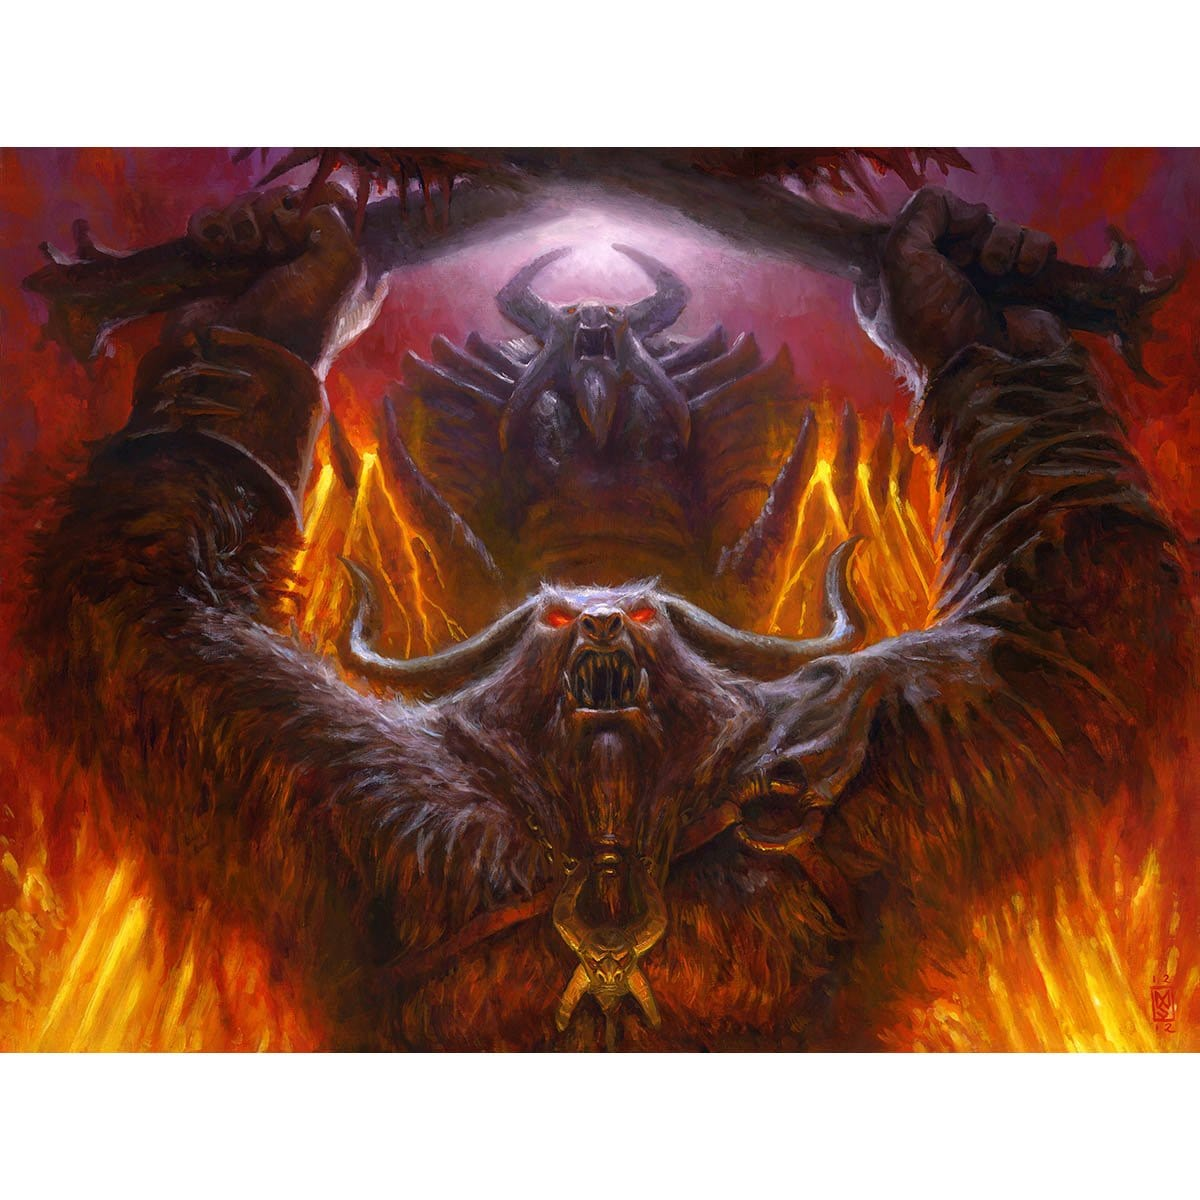 Fanatic of Mogis Print - Print - Original Magic Art - Accessories for Magic the Gathering and other card games